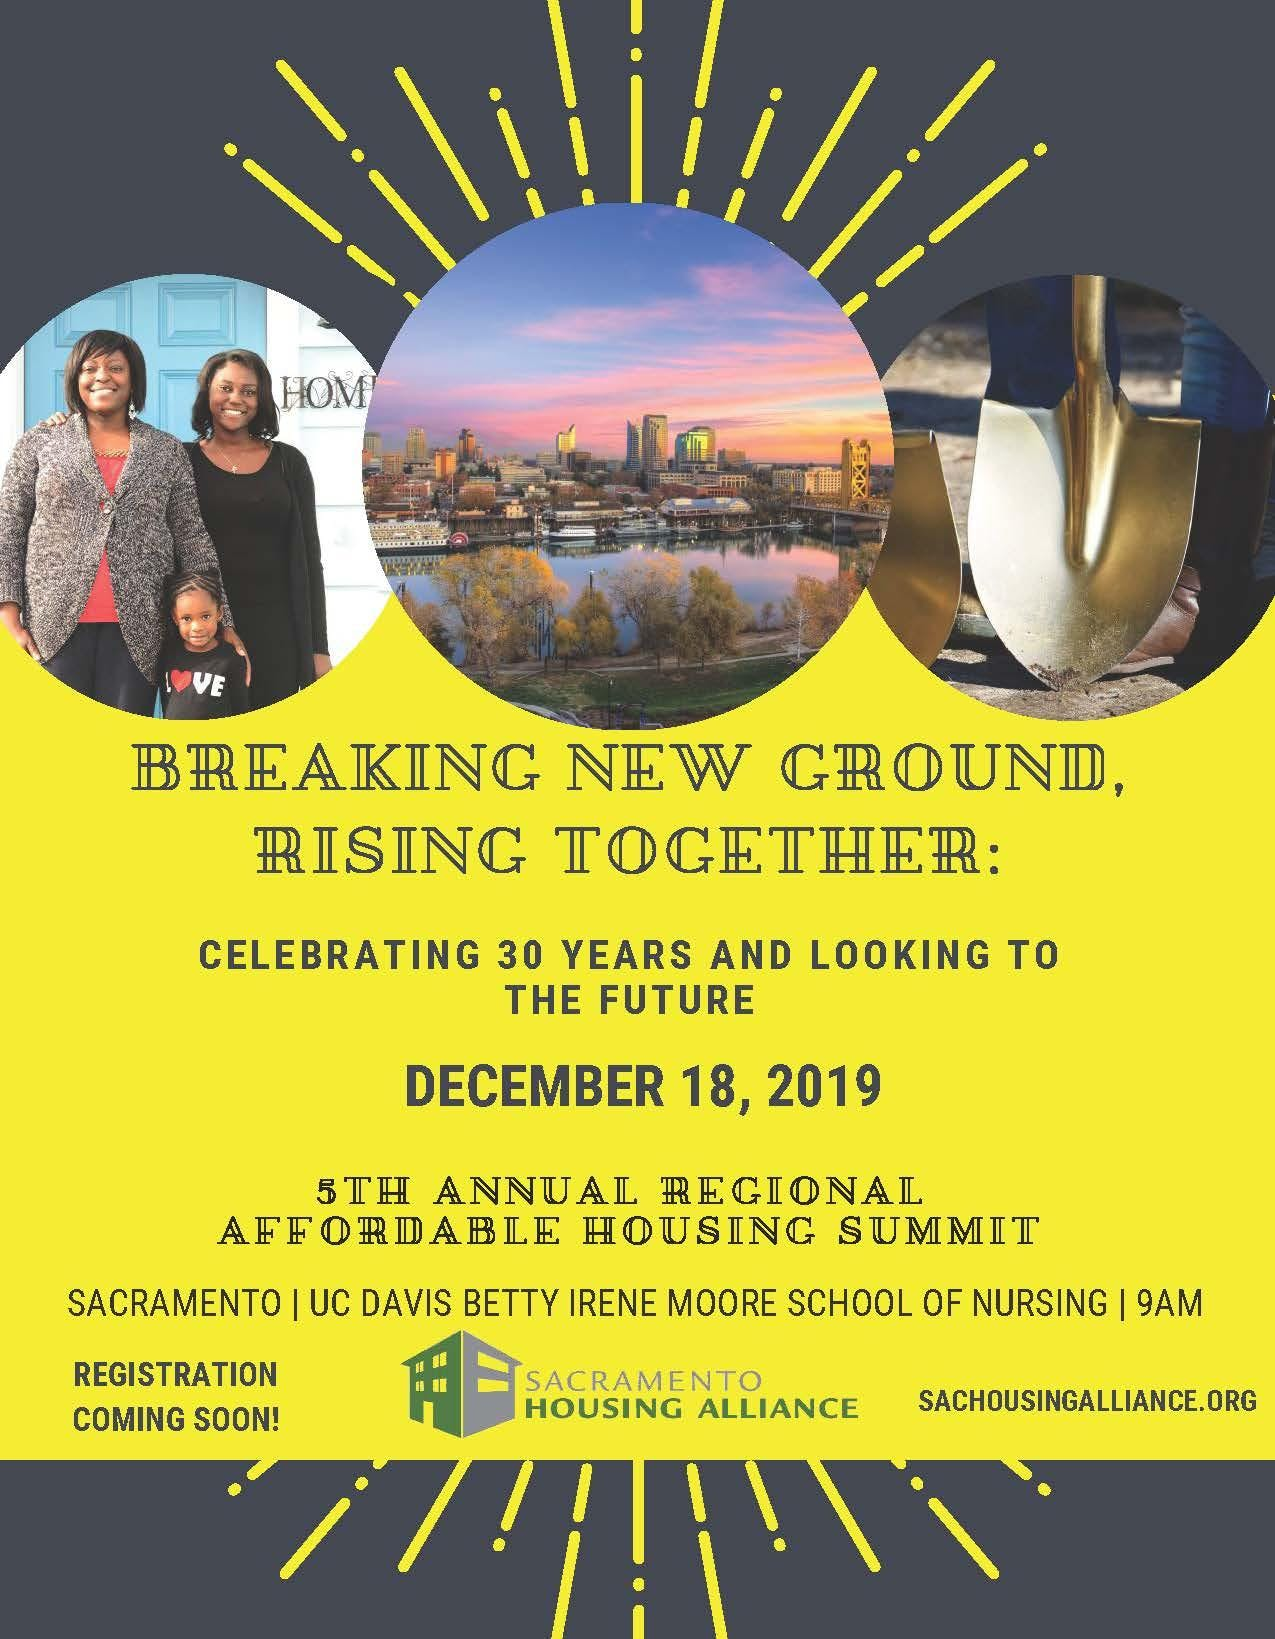 5th Annual Sacramento Regional Affordable Housing Summit Breaking New Ground Rising Together